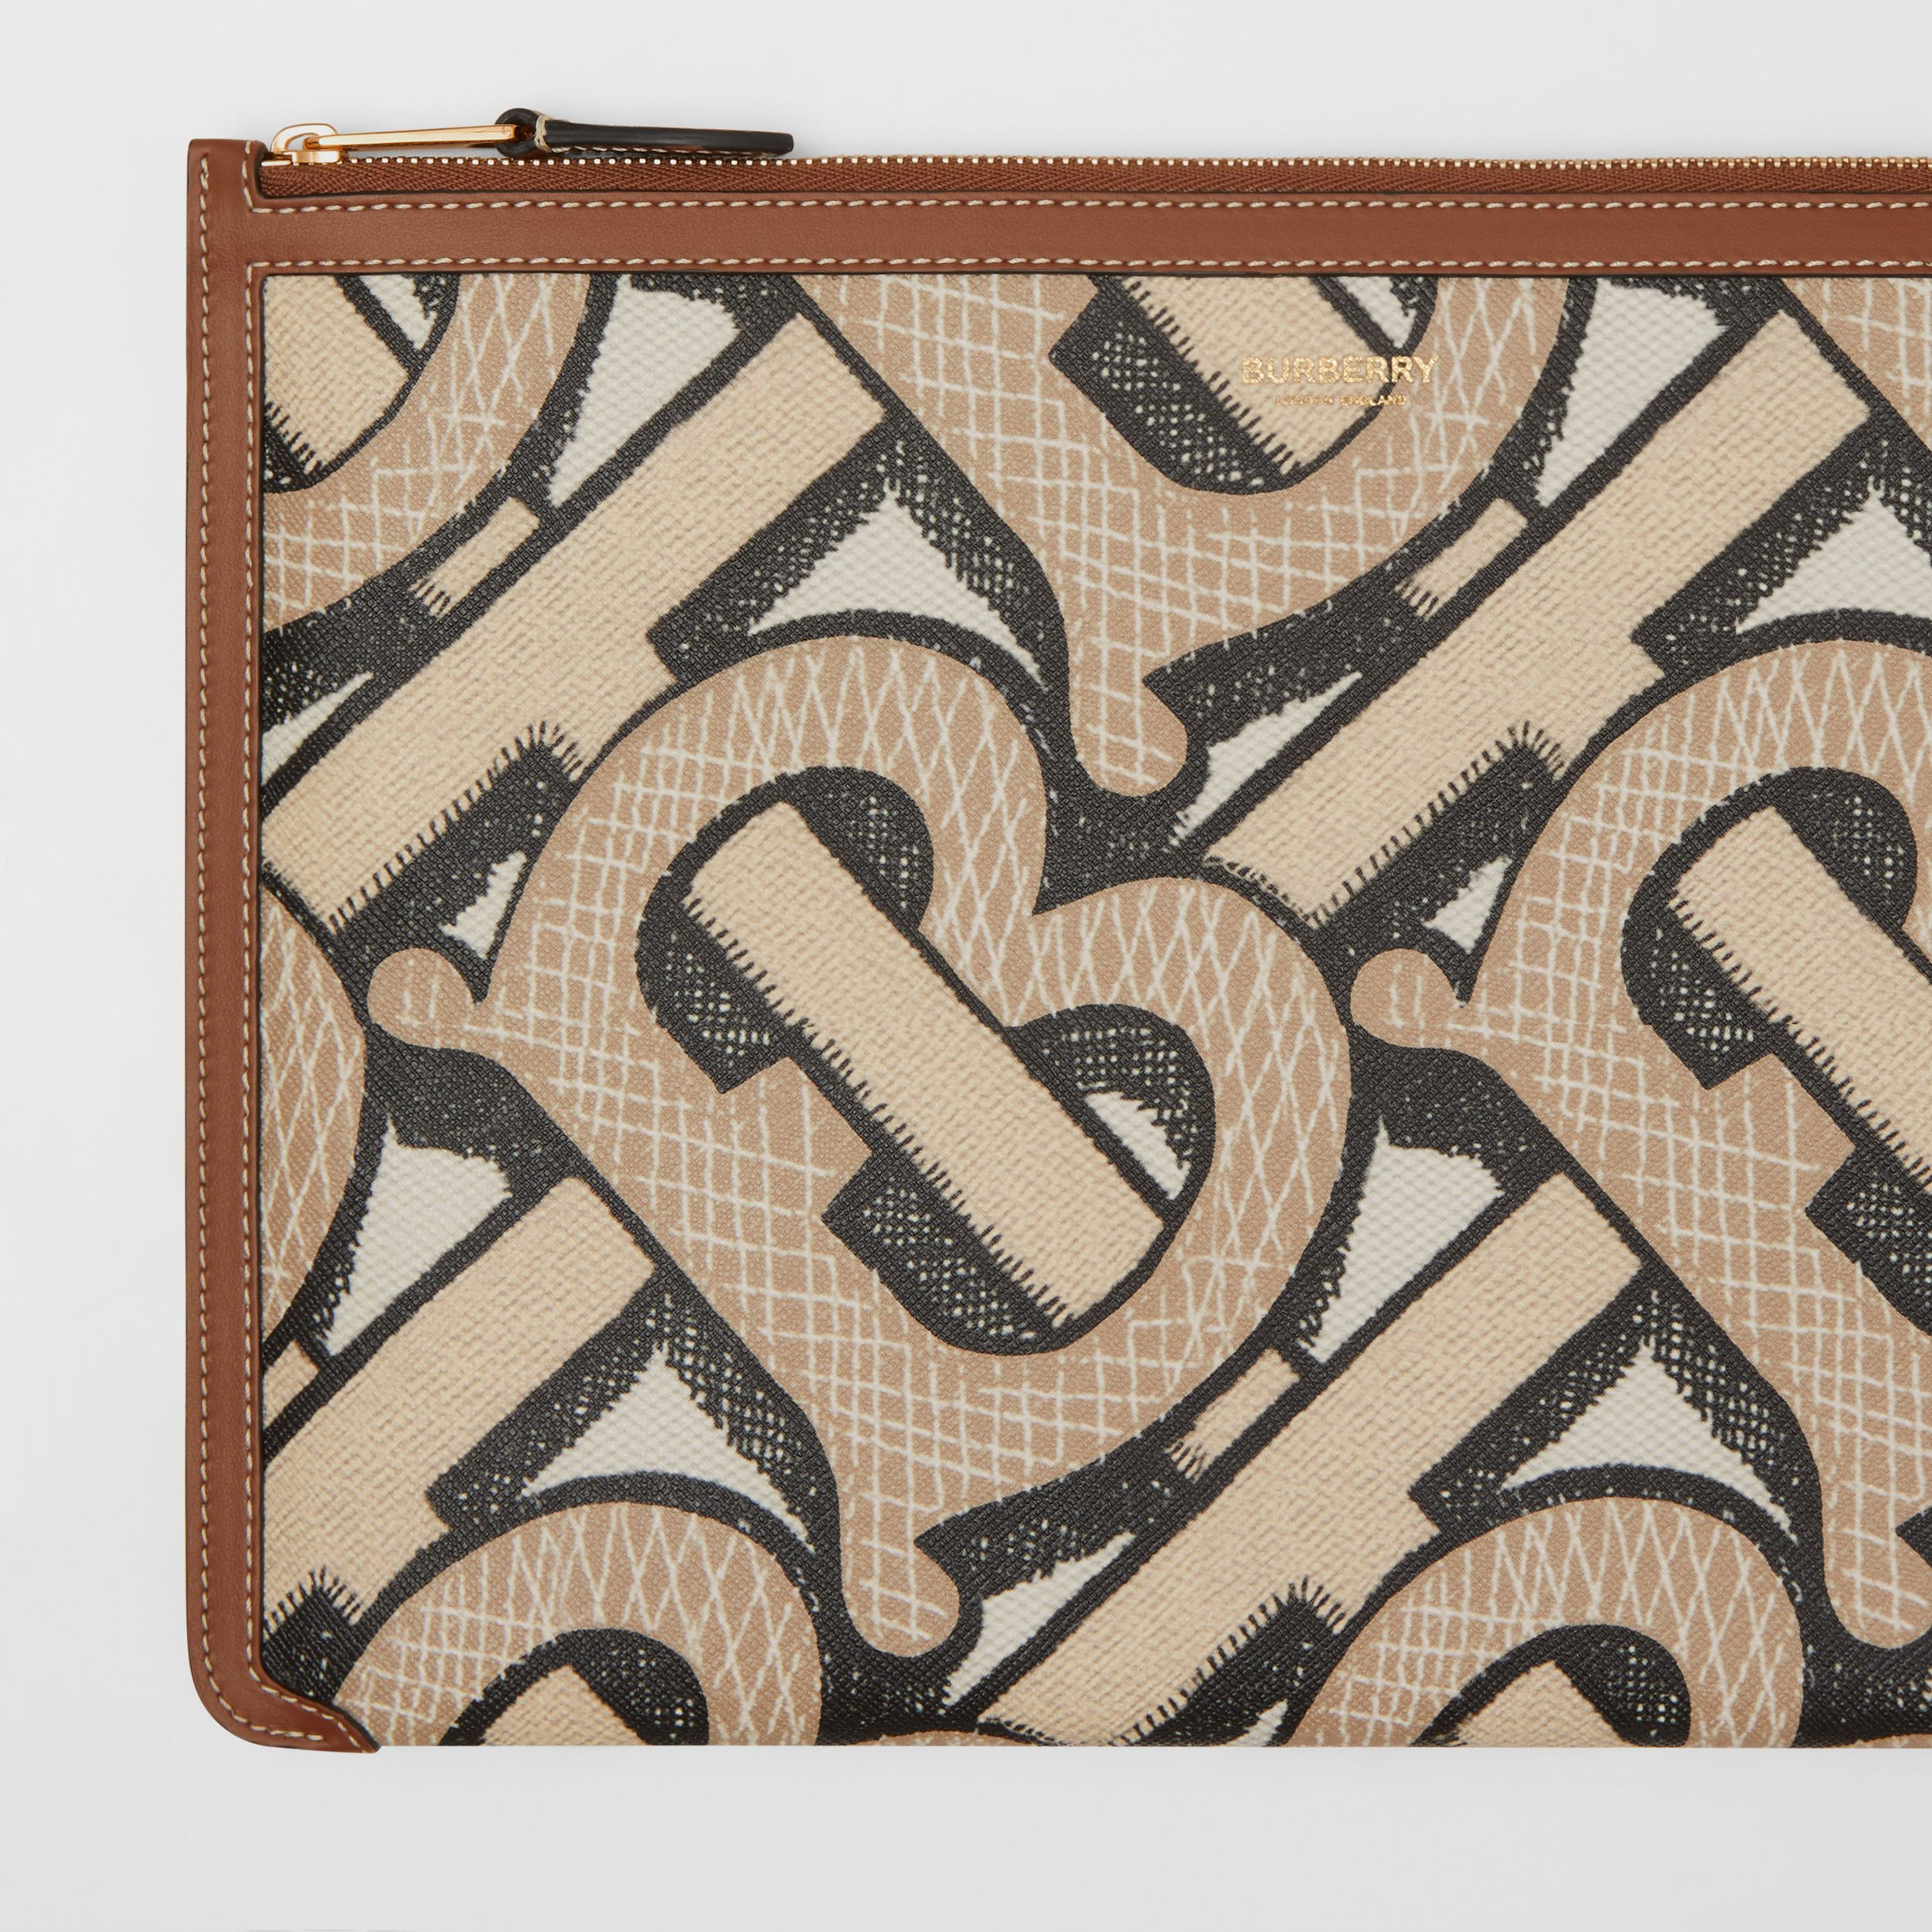 Monogram Print E-canvas and Leather Pouch in Dark Beige - Women | Burberry - 2